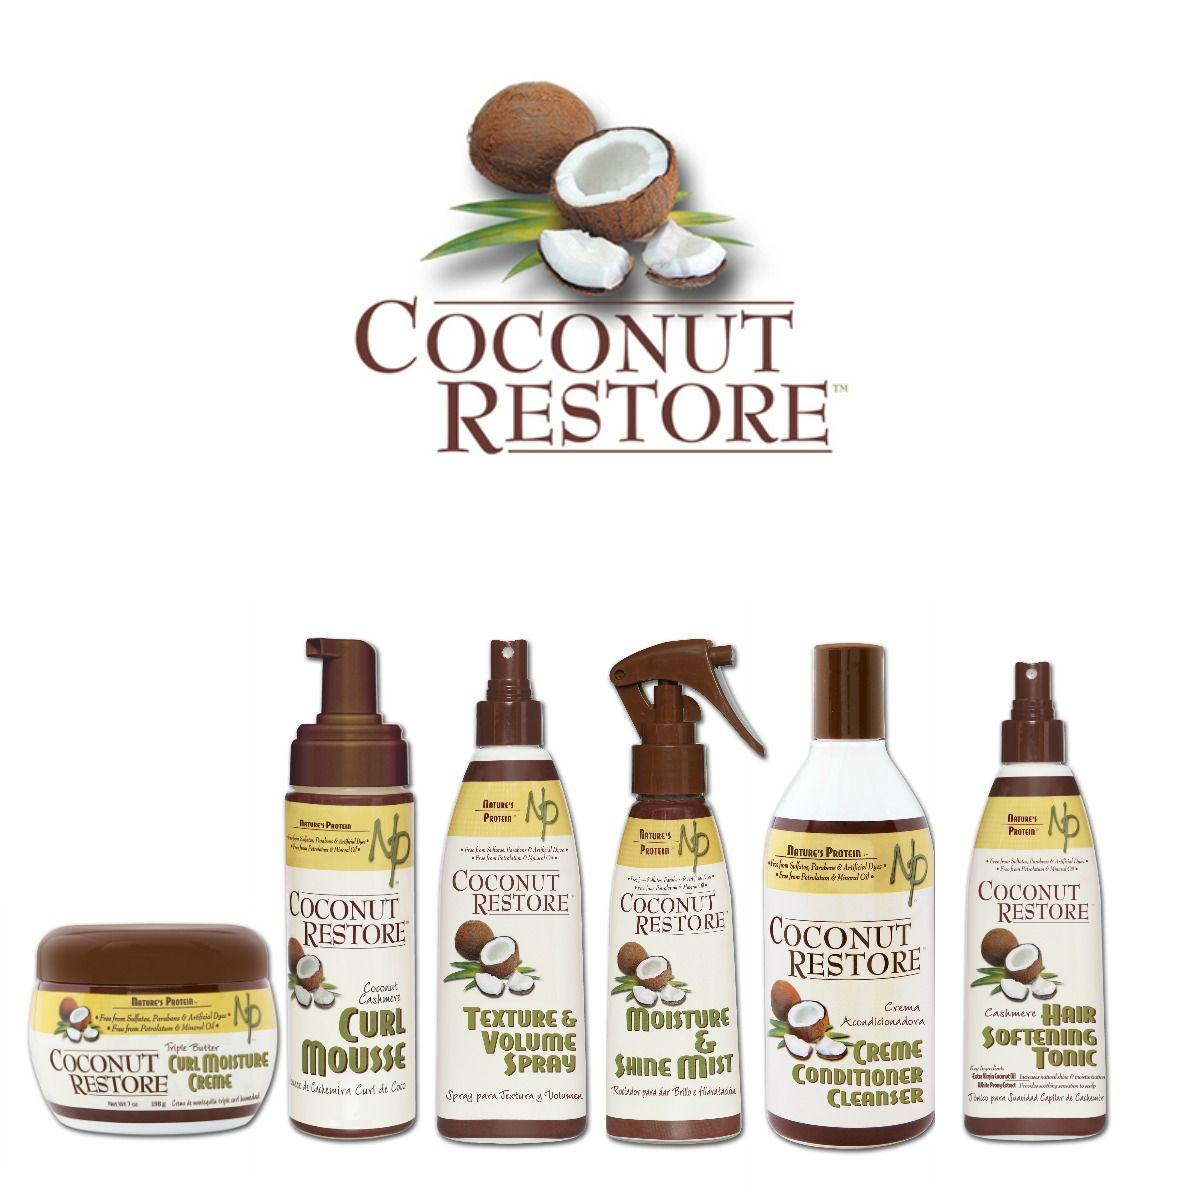 We are teaming up with @iHeartRadio and @myV101 to celebrate our new product launch in #Memphis this weekend!  Join us today @ TJ Beauty Super Center on 3661 Hickory Hill Road from 4pm to 6pm for samples and giveaways! #CoconutRestore